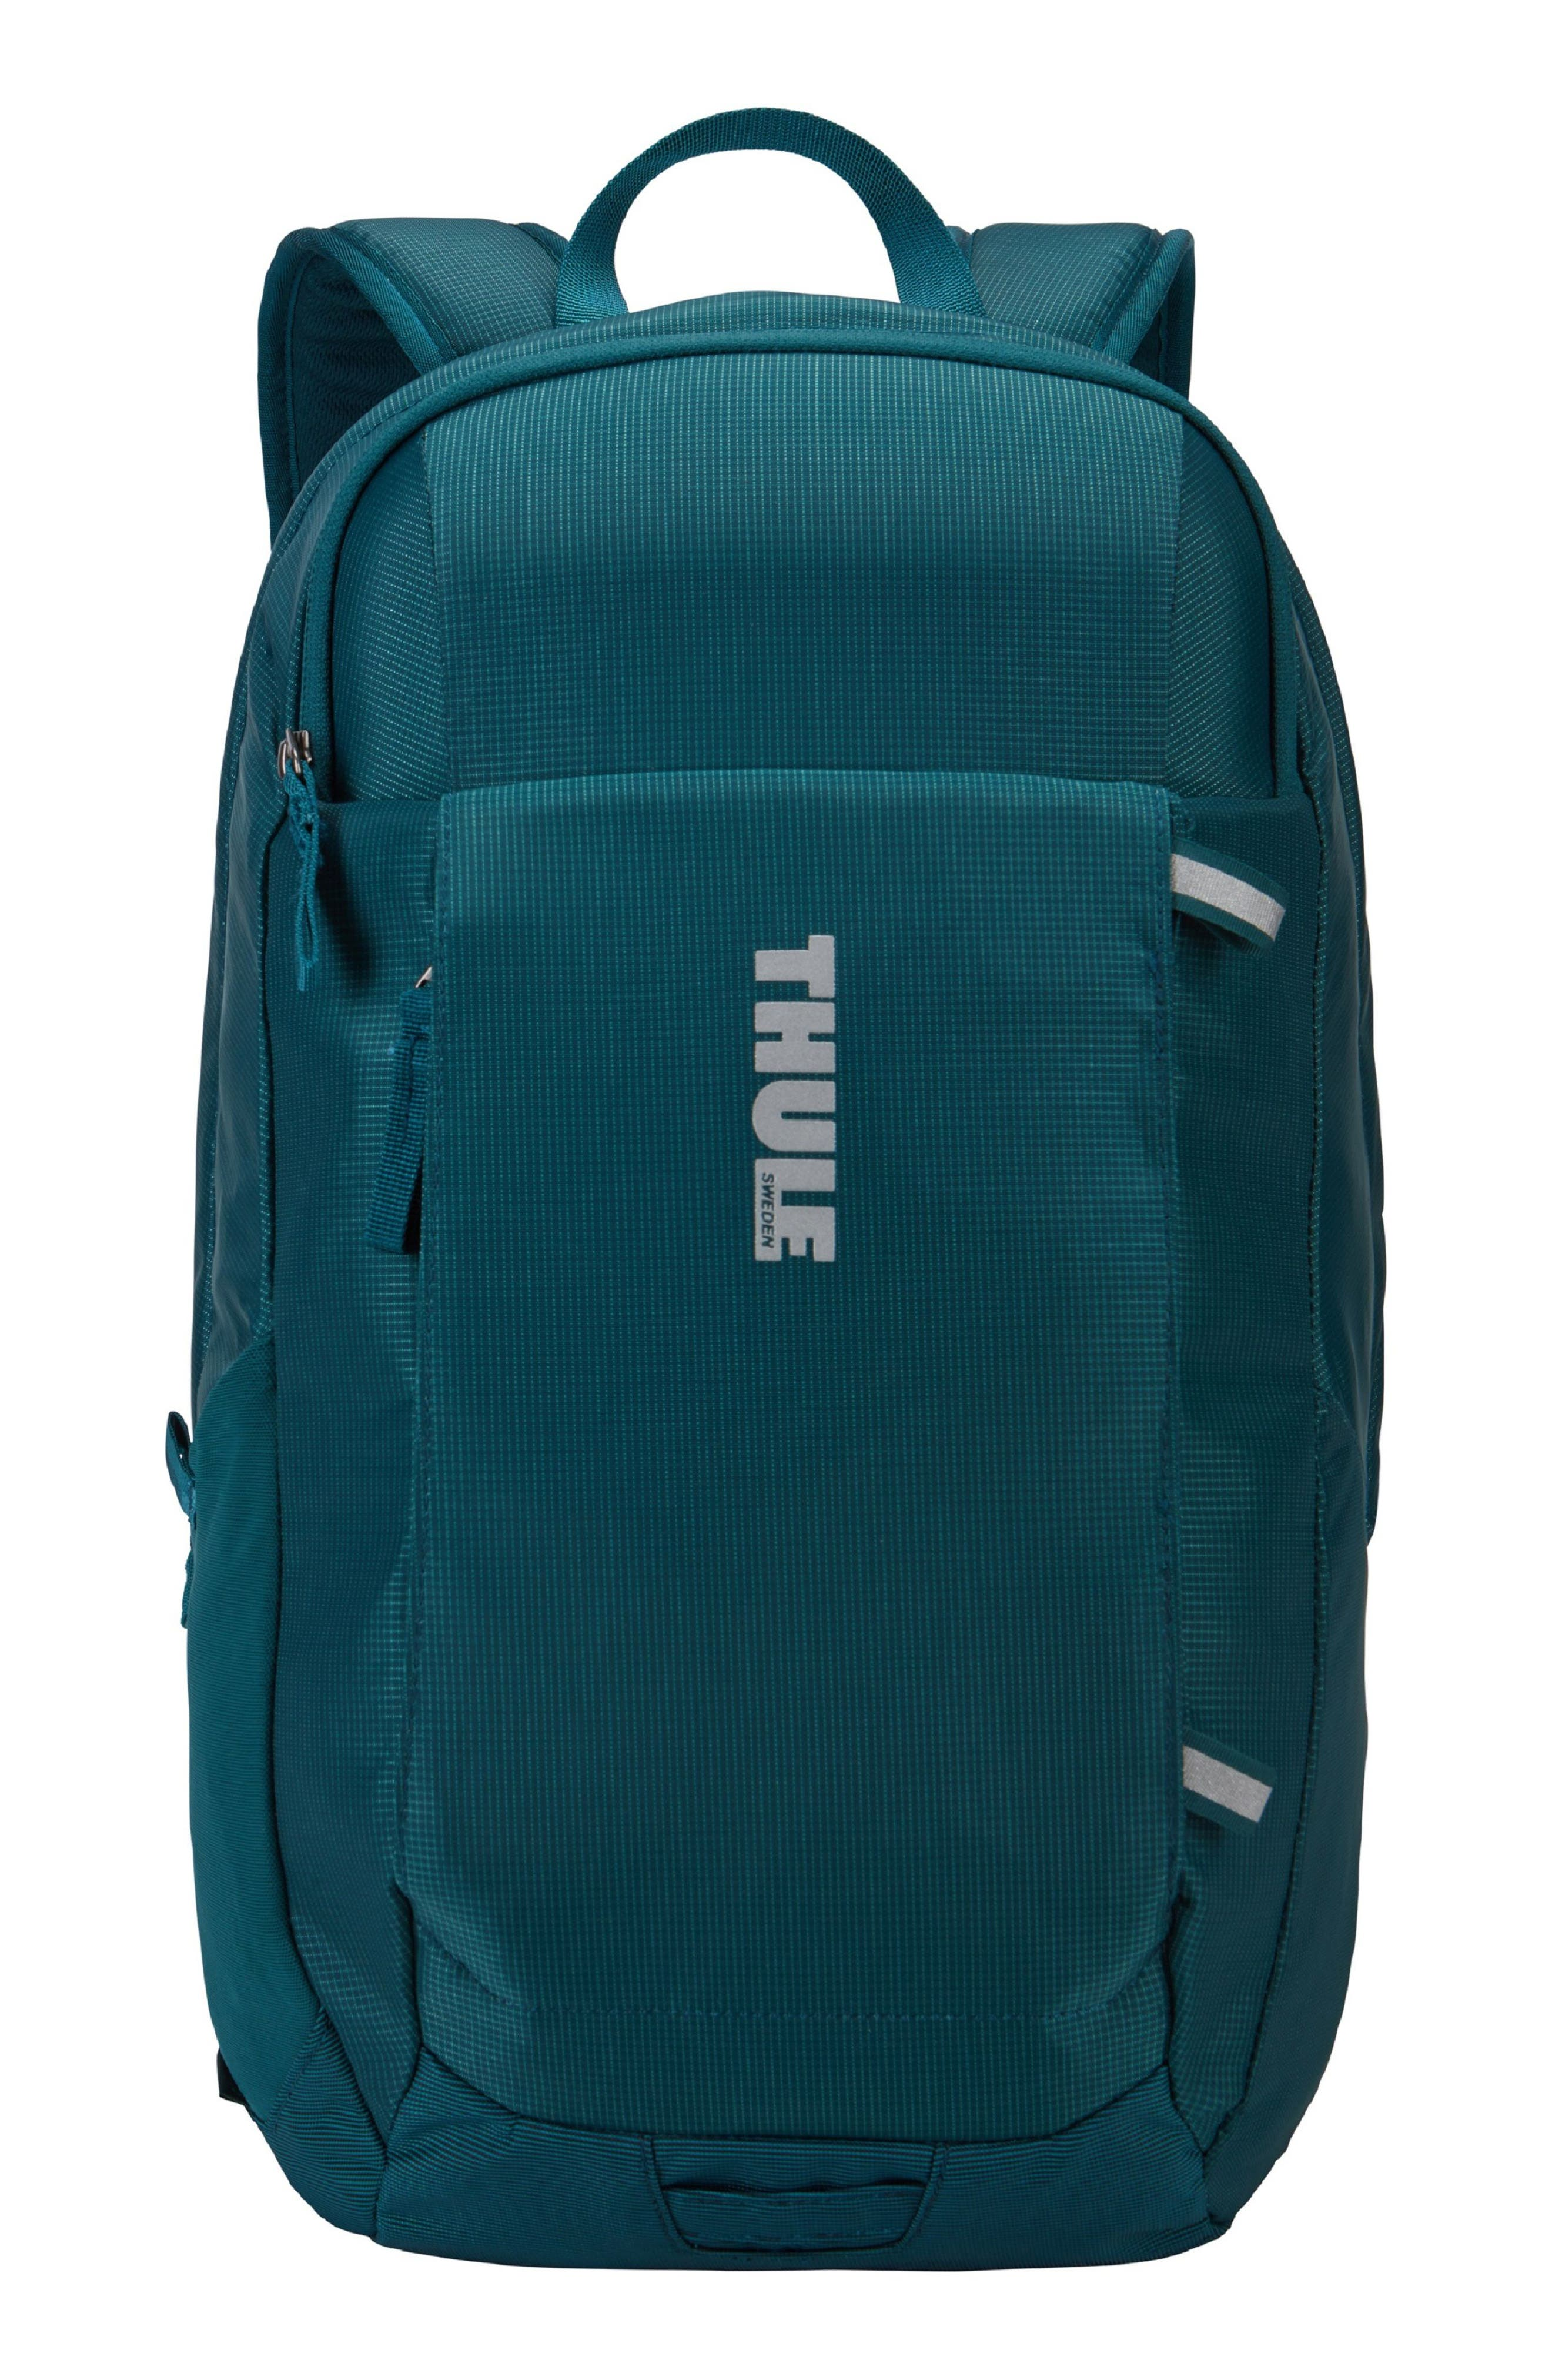 EnRoute Backpack,                         Main,                         color, Teal